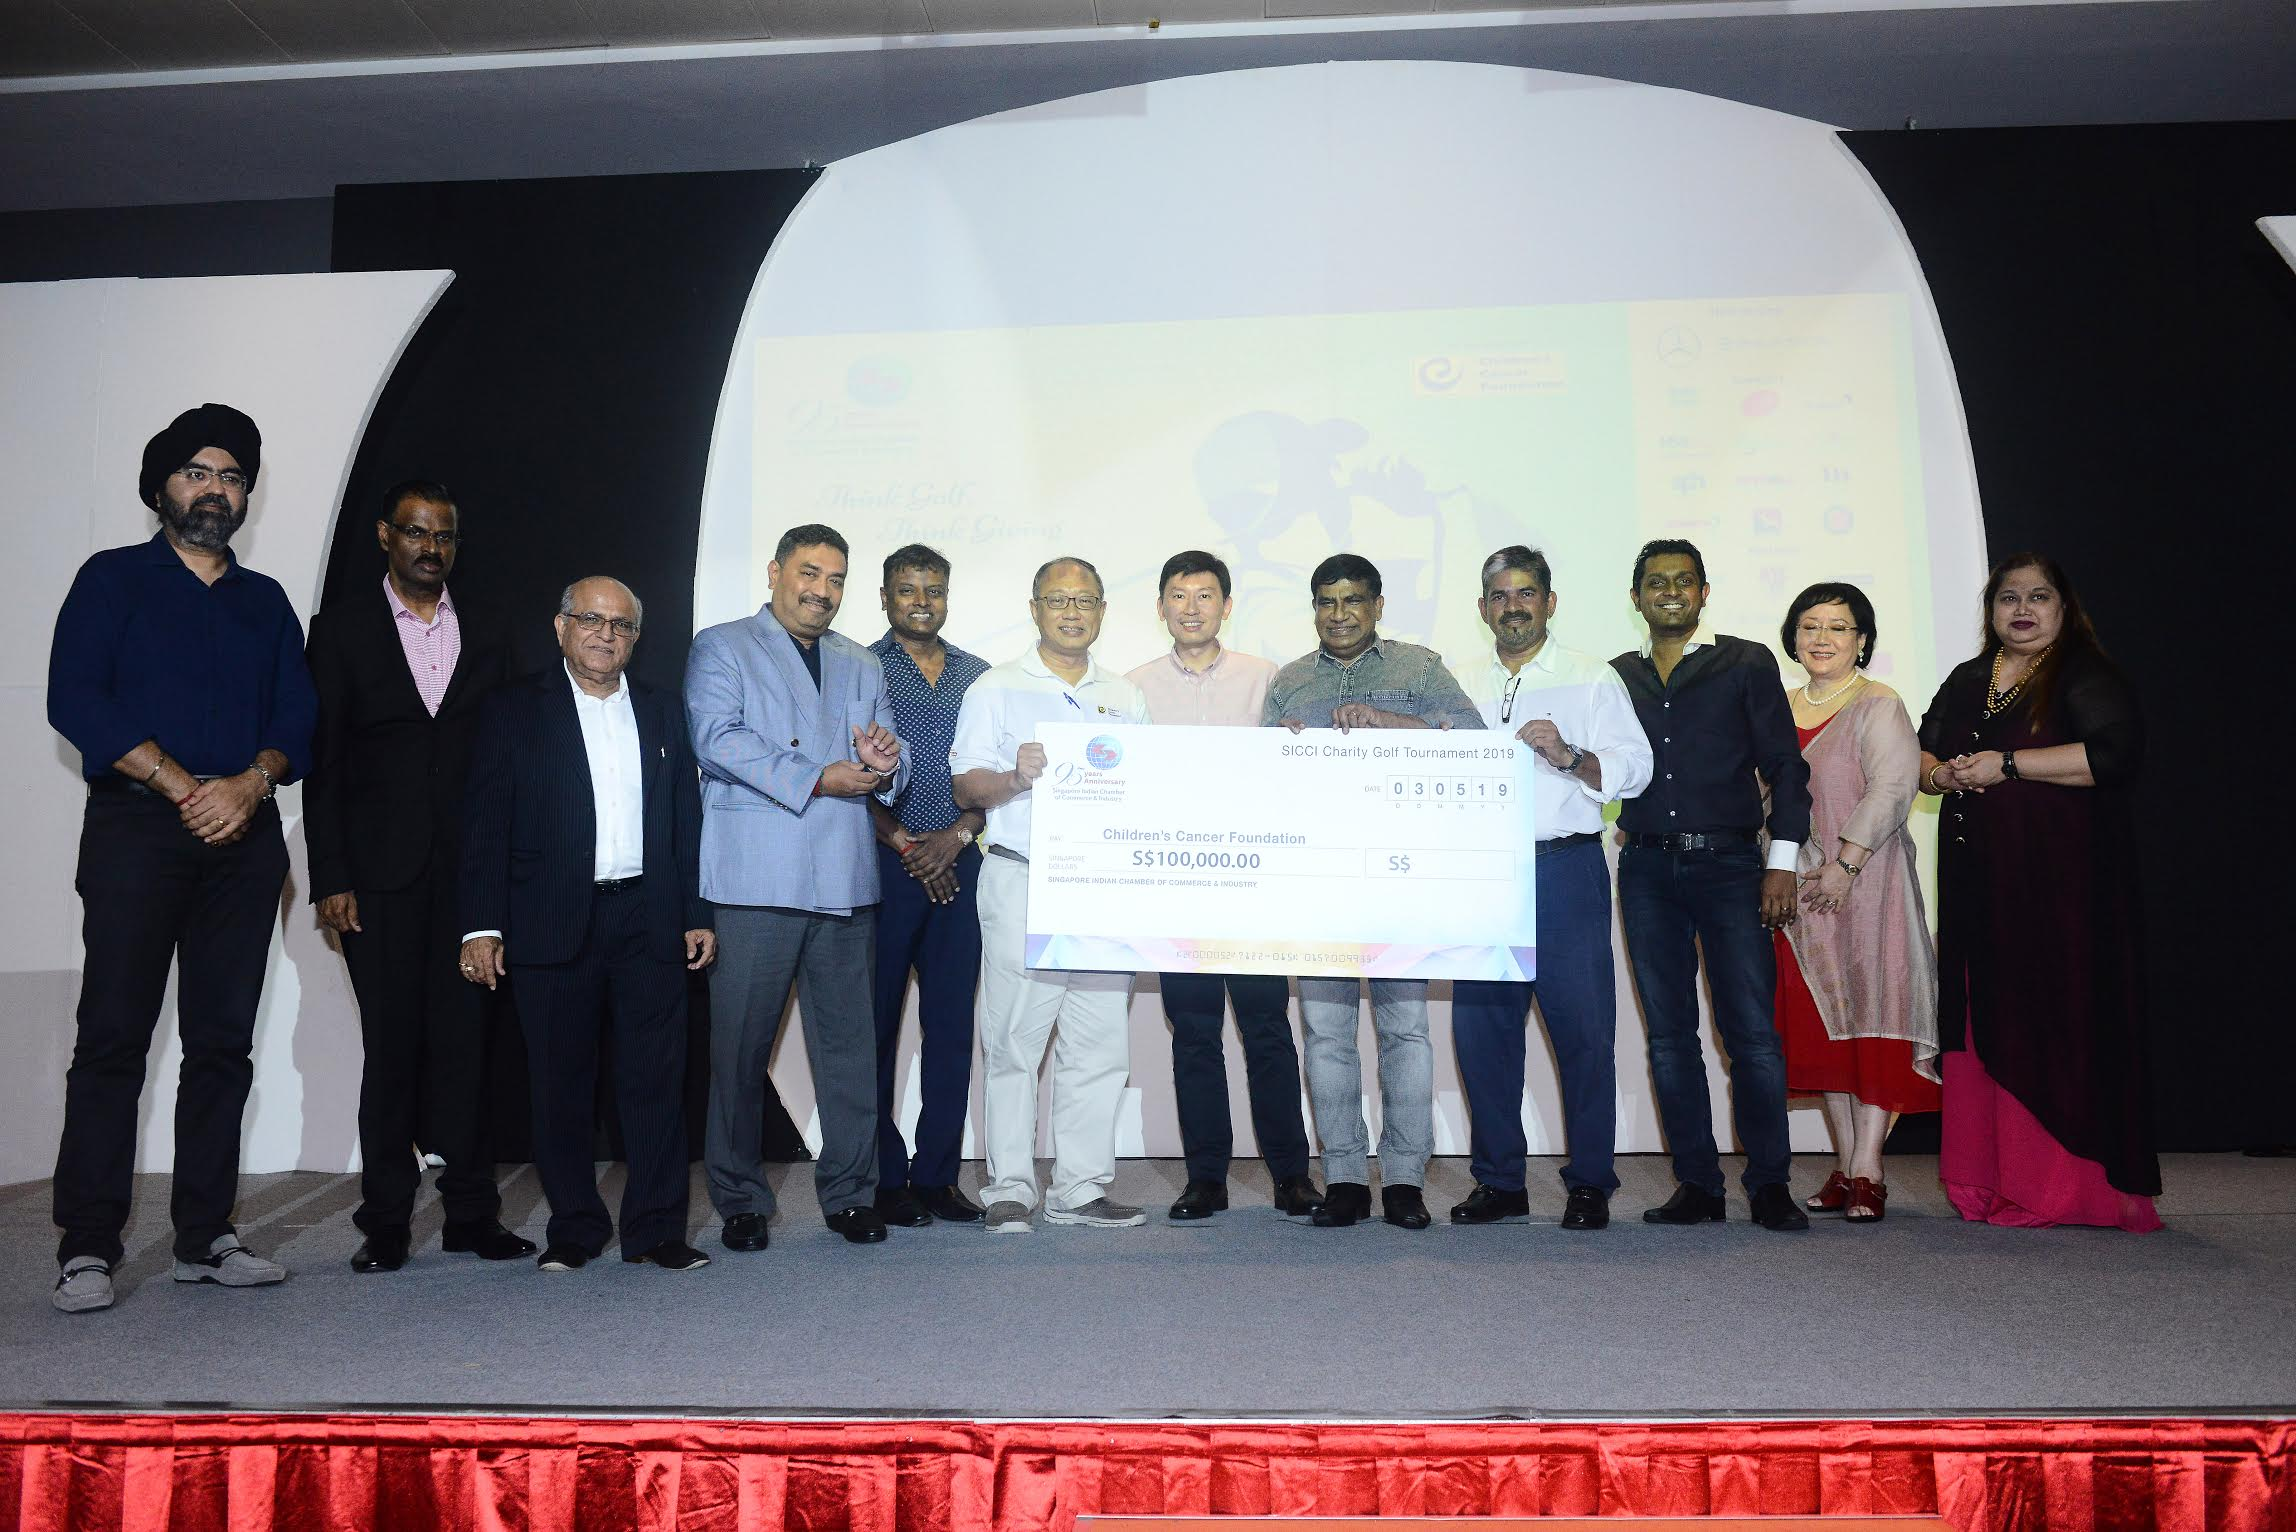 Guest of Honour Senior Minister of State for Education and Trade & Industry, Mr Chee Hong Tat, handed the cheque to Children's Cancer Foundation at the dinner reception on Friday, May 3. Photo courtesy: Singapore Indian Chamber of Commerce & Industry